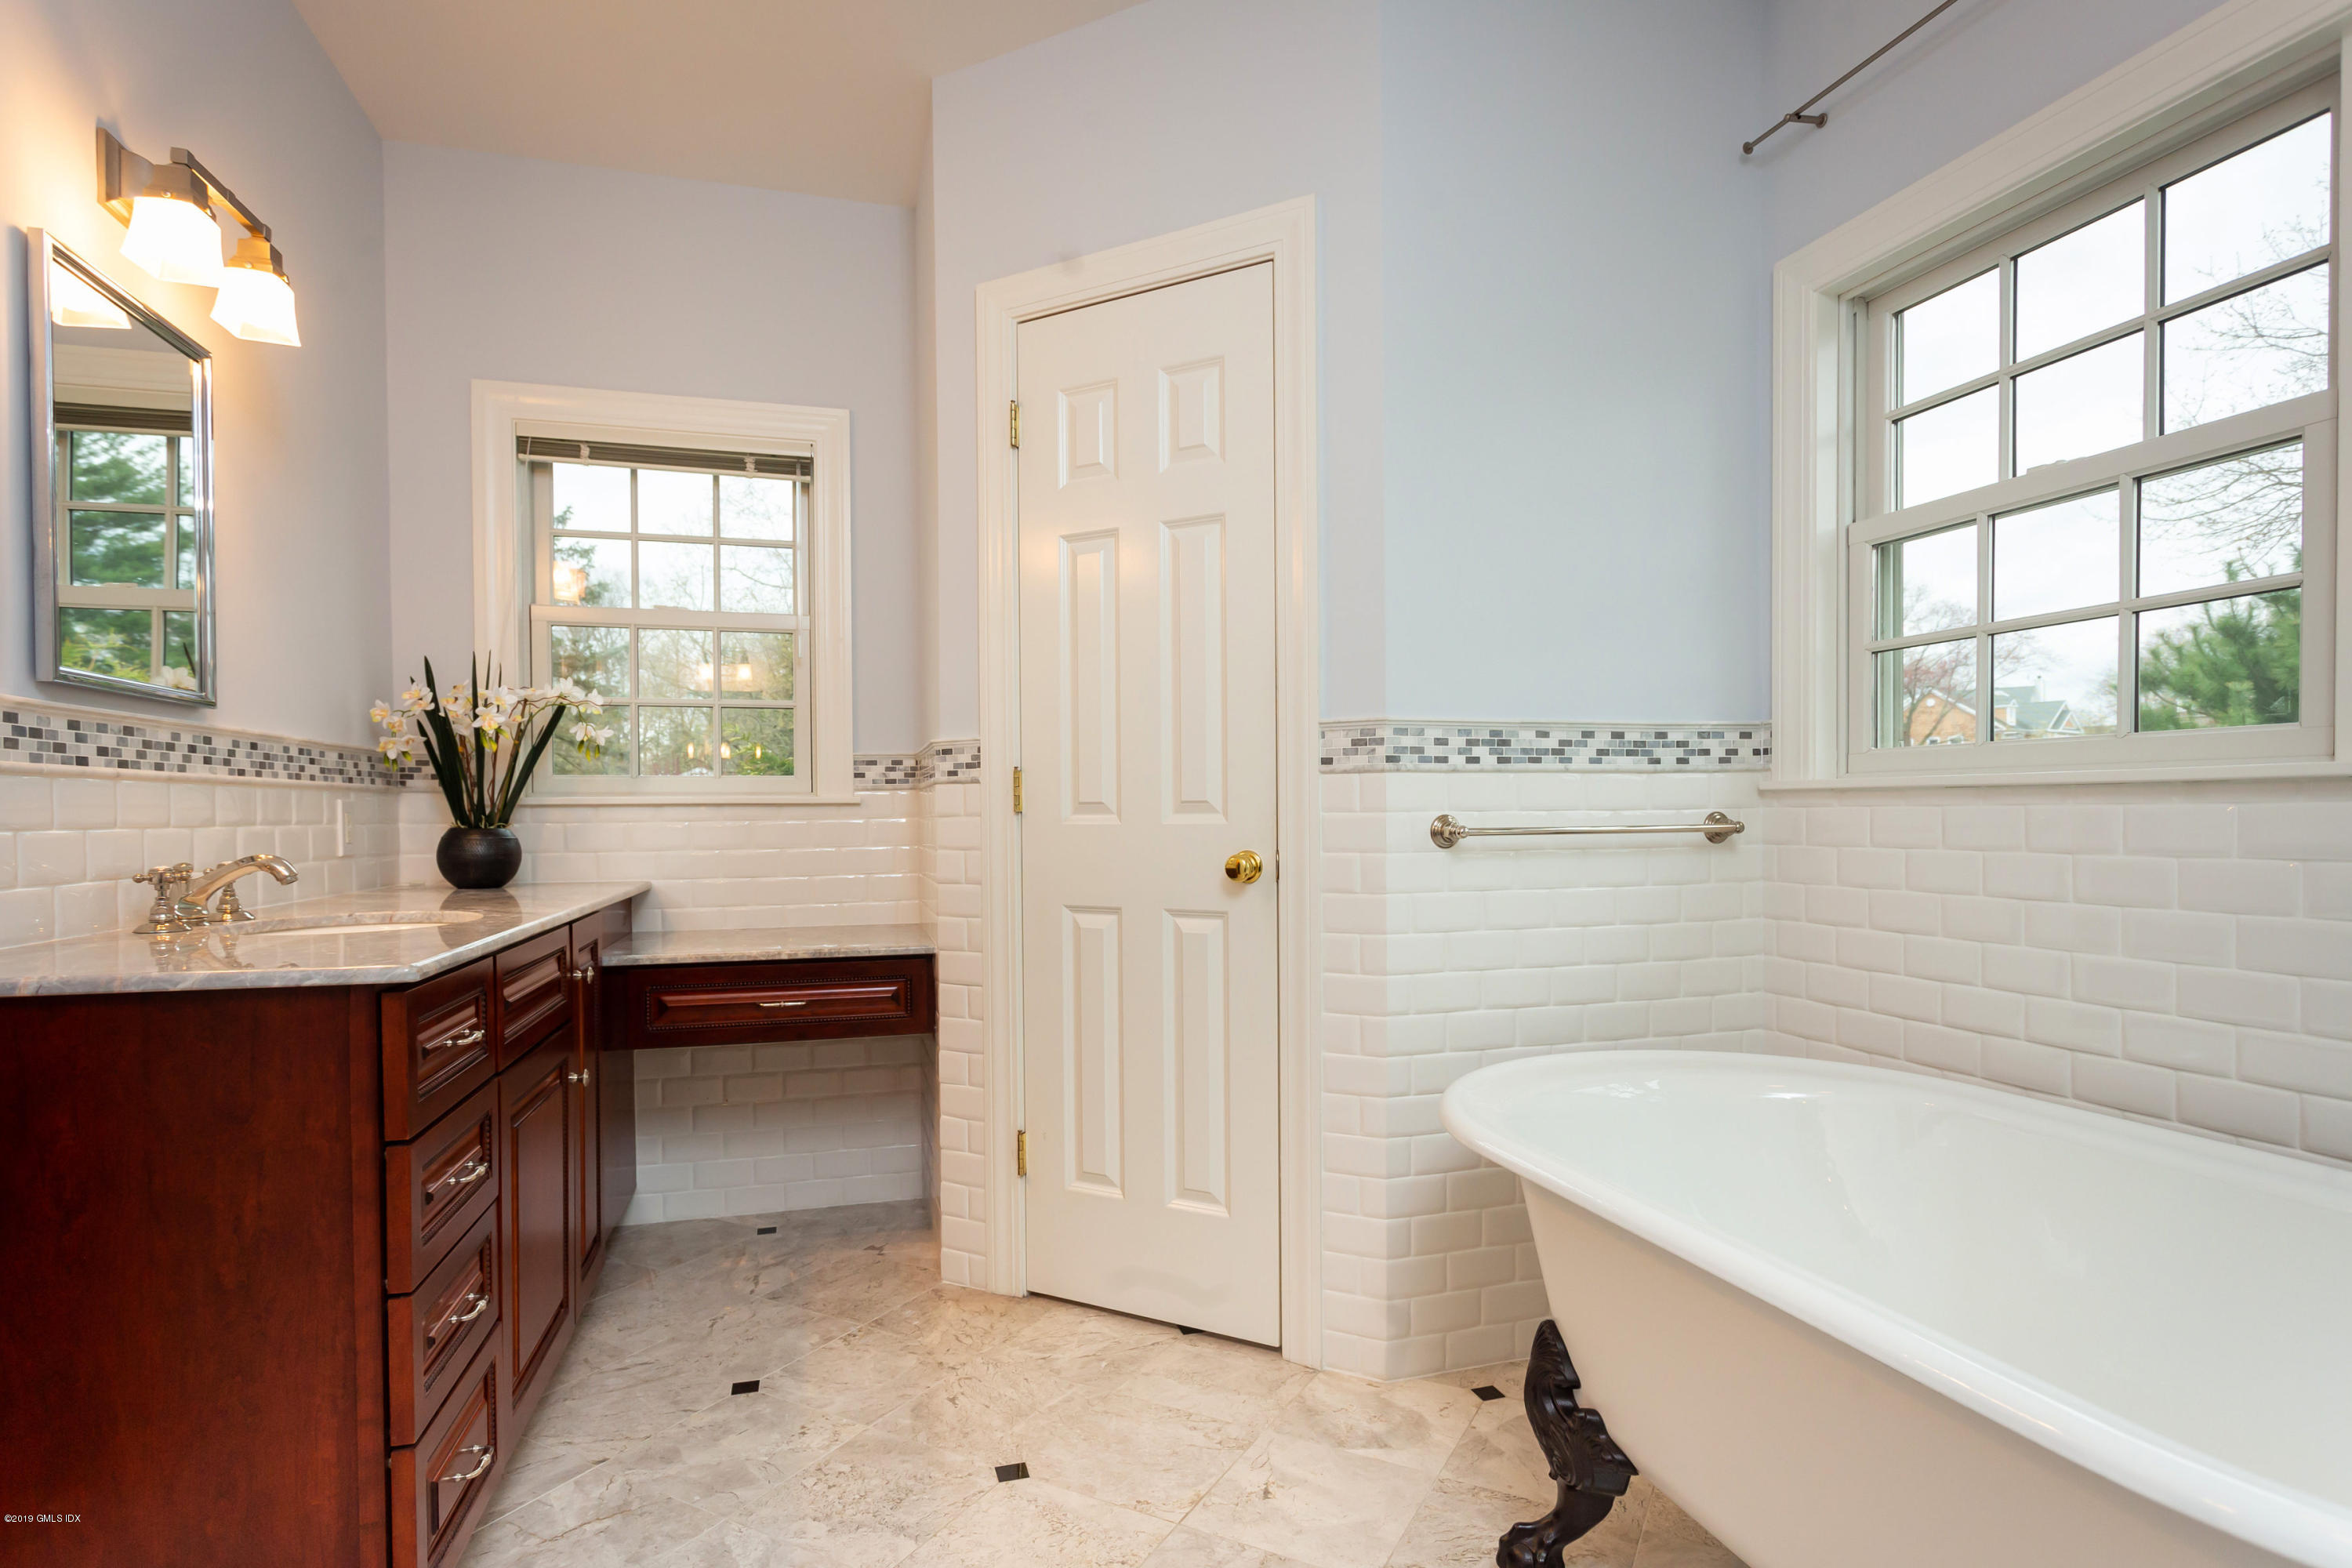 11 Tory Road,Riverside,Connecticut 06878,4 Bedrooms Bedrooms,3 BathroomsBathrooms,Single family,Tory,106241